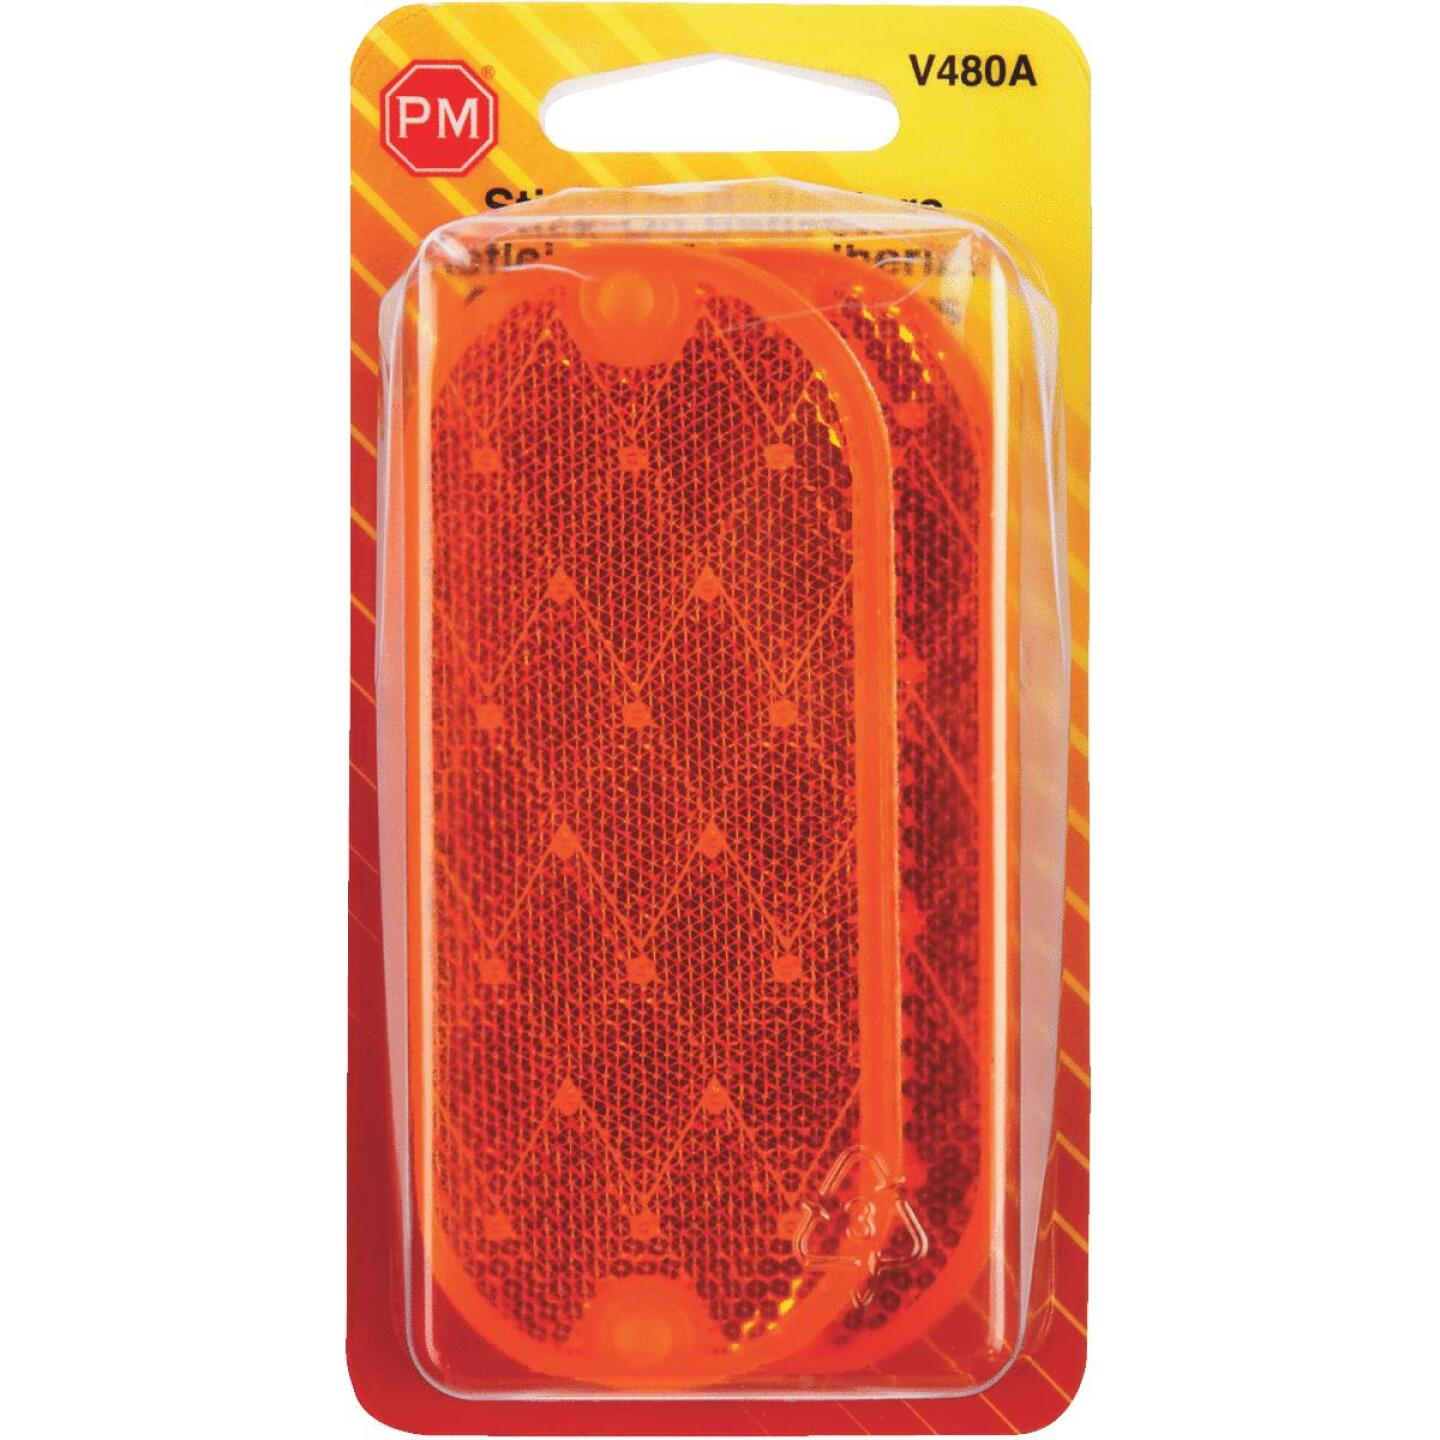 Peterson 1-7/8 In. W. x 4-3/8 In. H. Oblong Amber Oval Reflector (2-Pack) Image 2